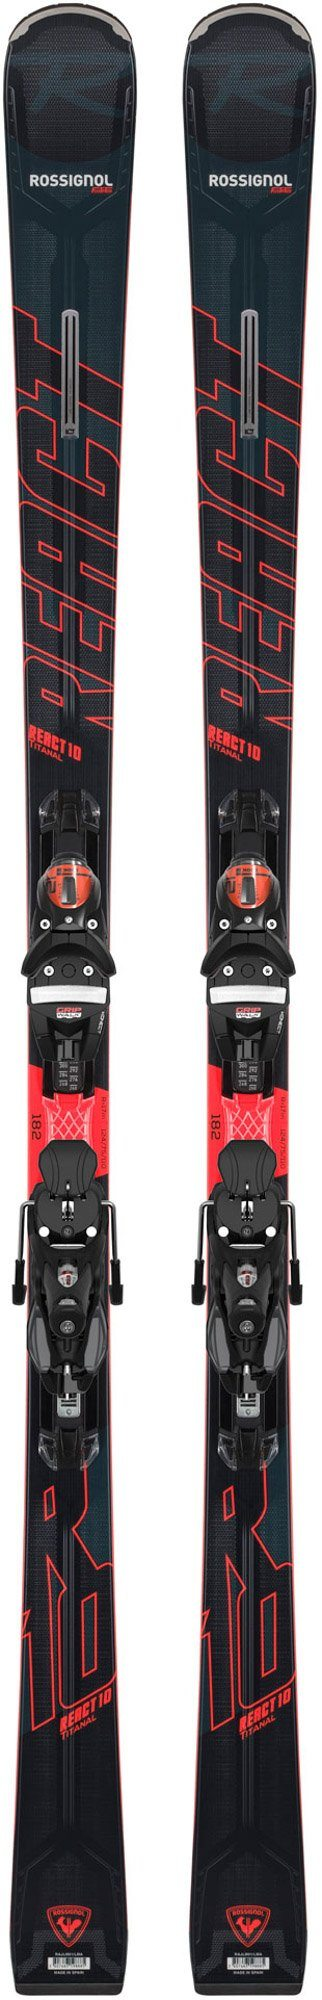 ROSSIGNOL MEN'S REACT 10 TI  SKI with SPX KONECT GW B80 BINDINGS